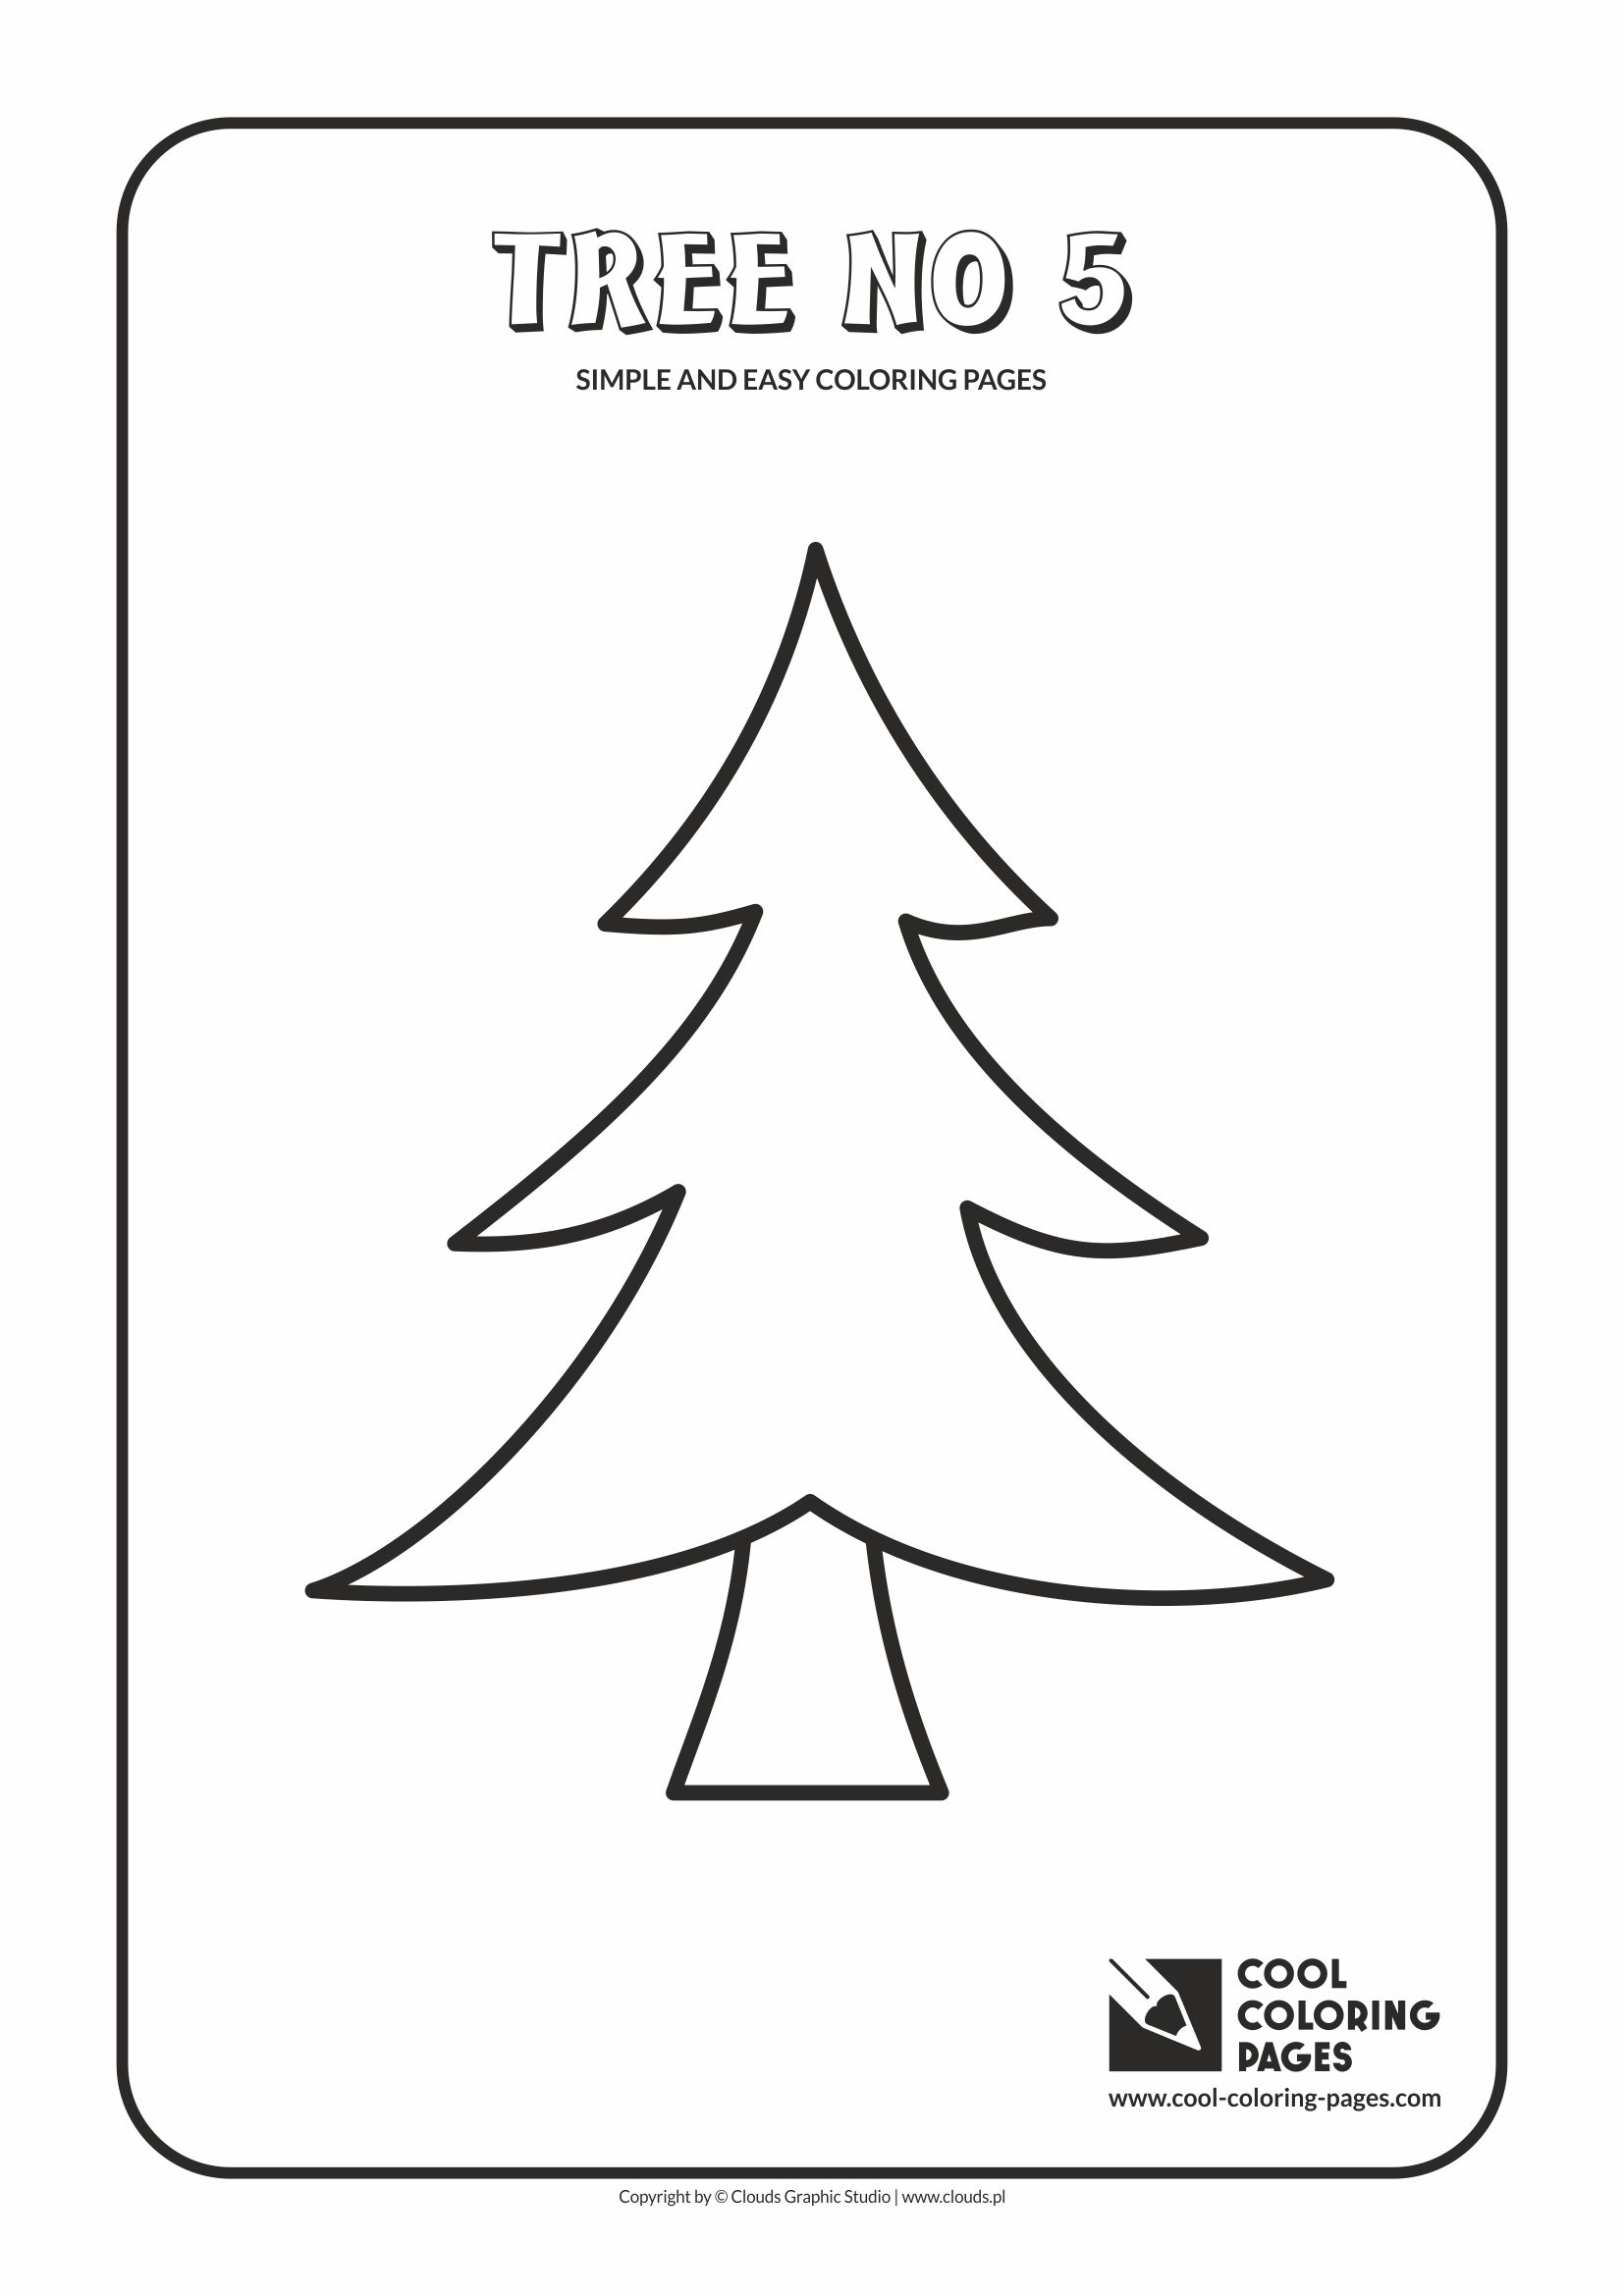 Simple and easy coloring pages for toddlers - Tree no 5